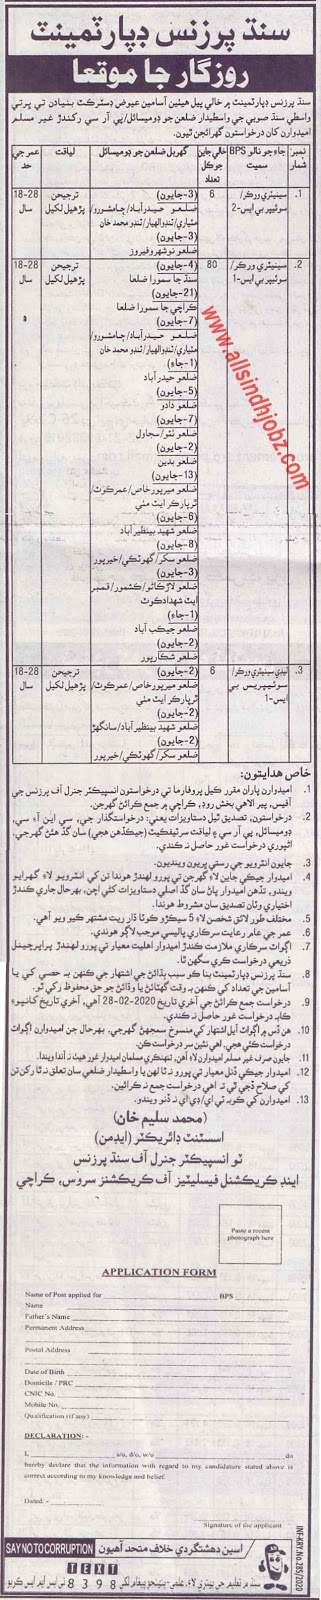 92 Vacancies of Sindh Prisons Department 2020